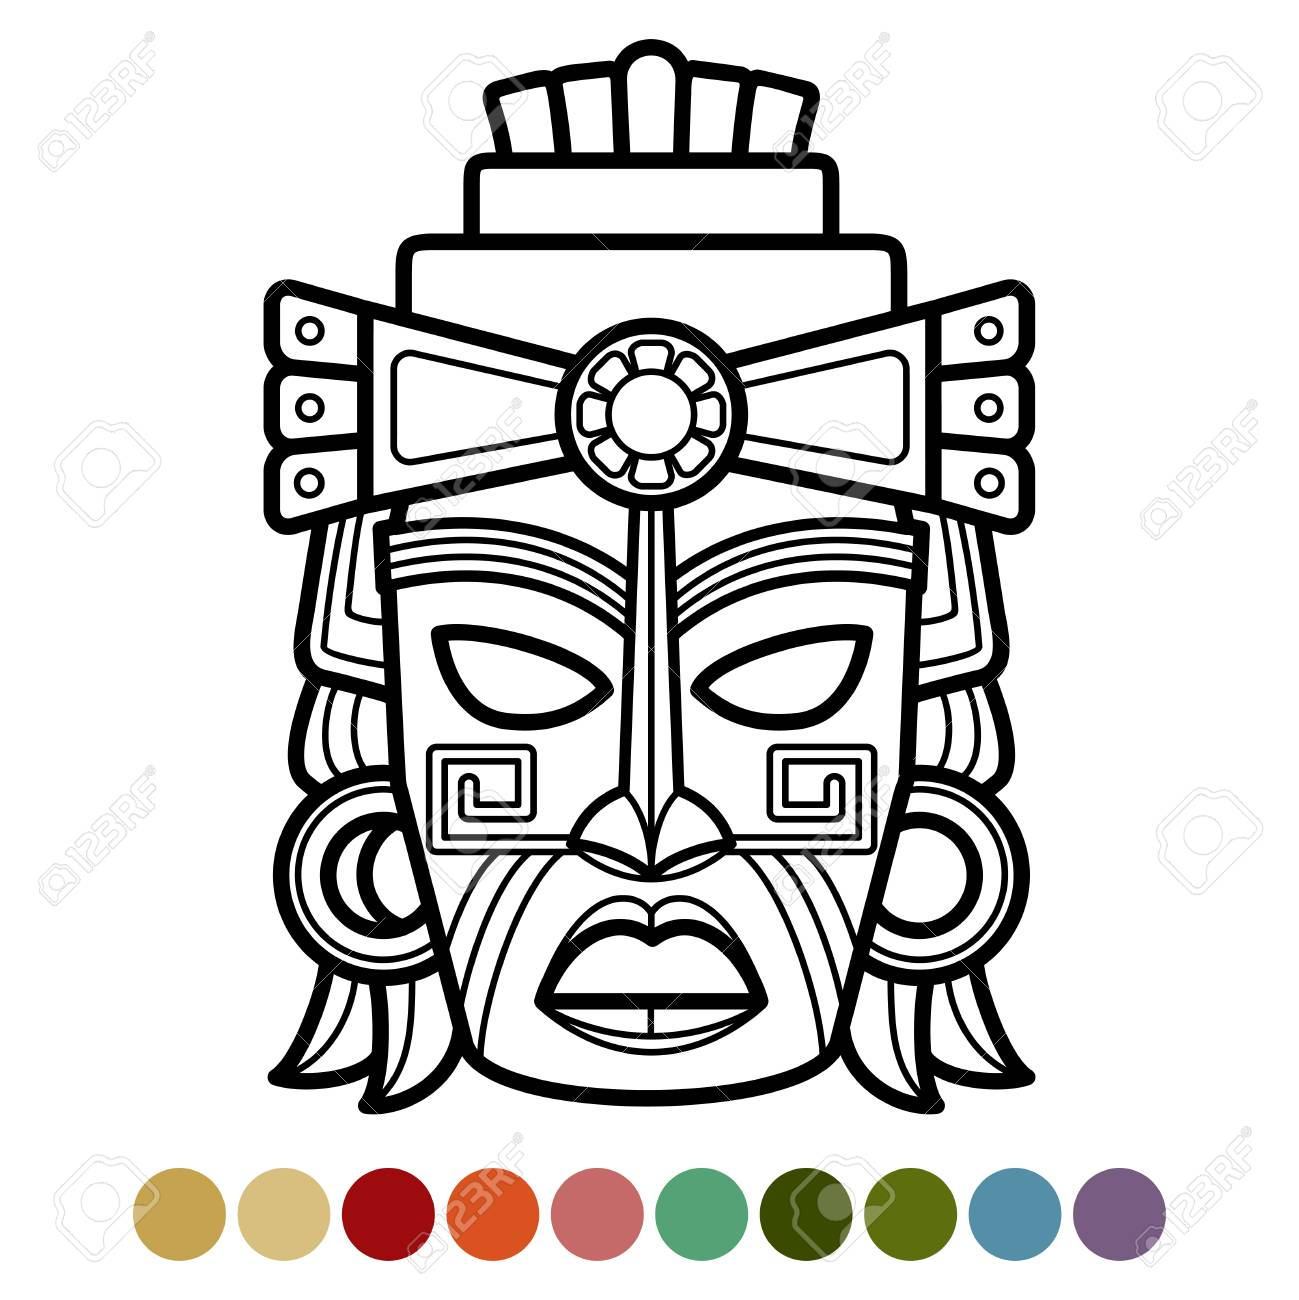 Mexican, African, Aztec Mask Coloring Page inside Aztec Masks Template